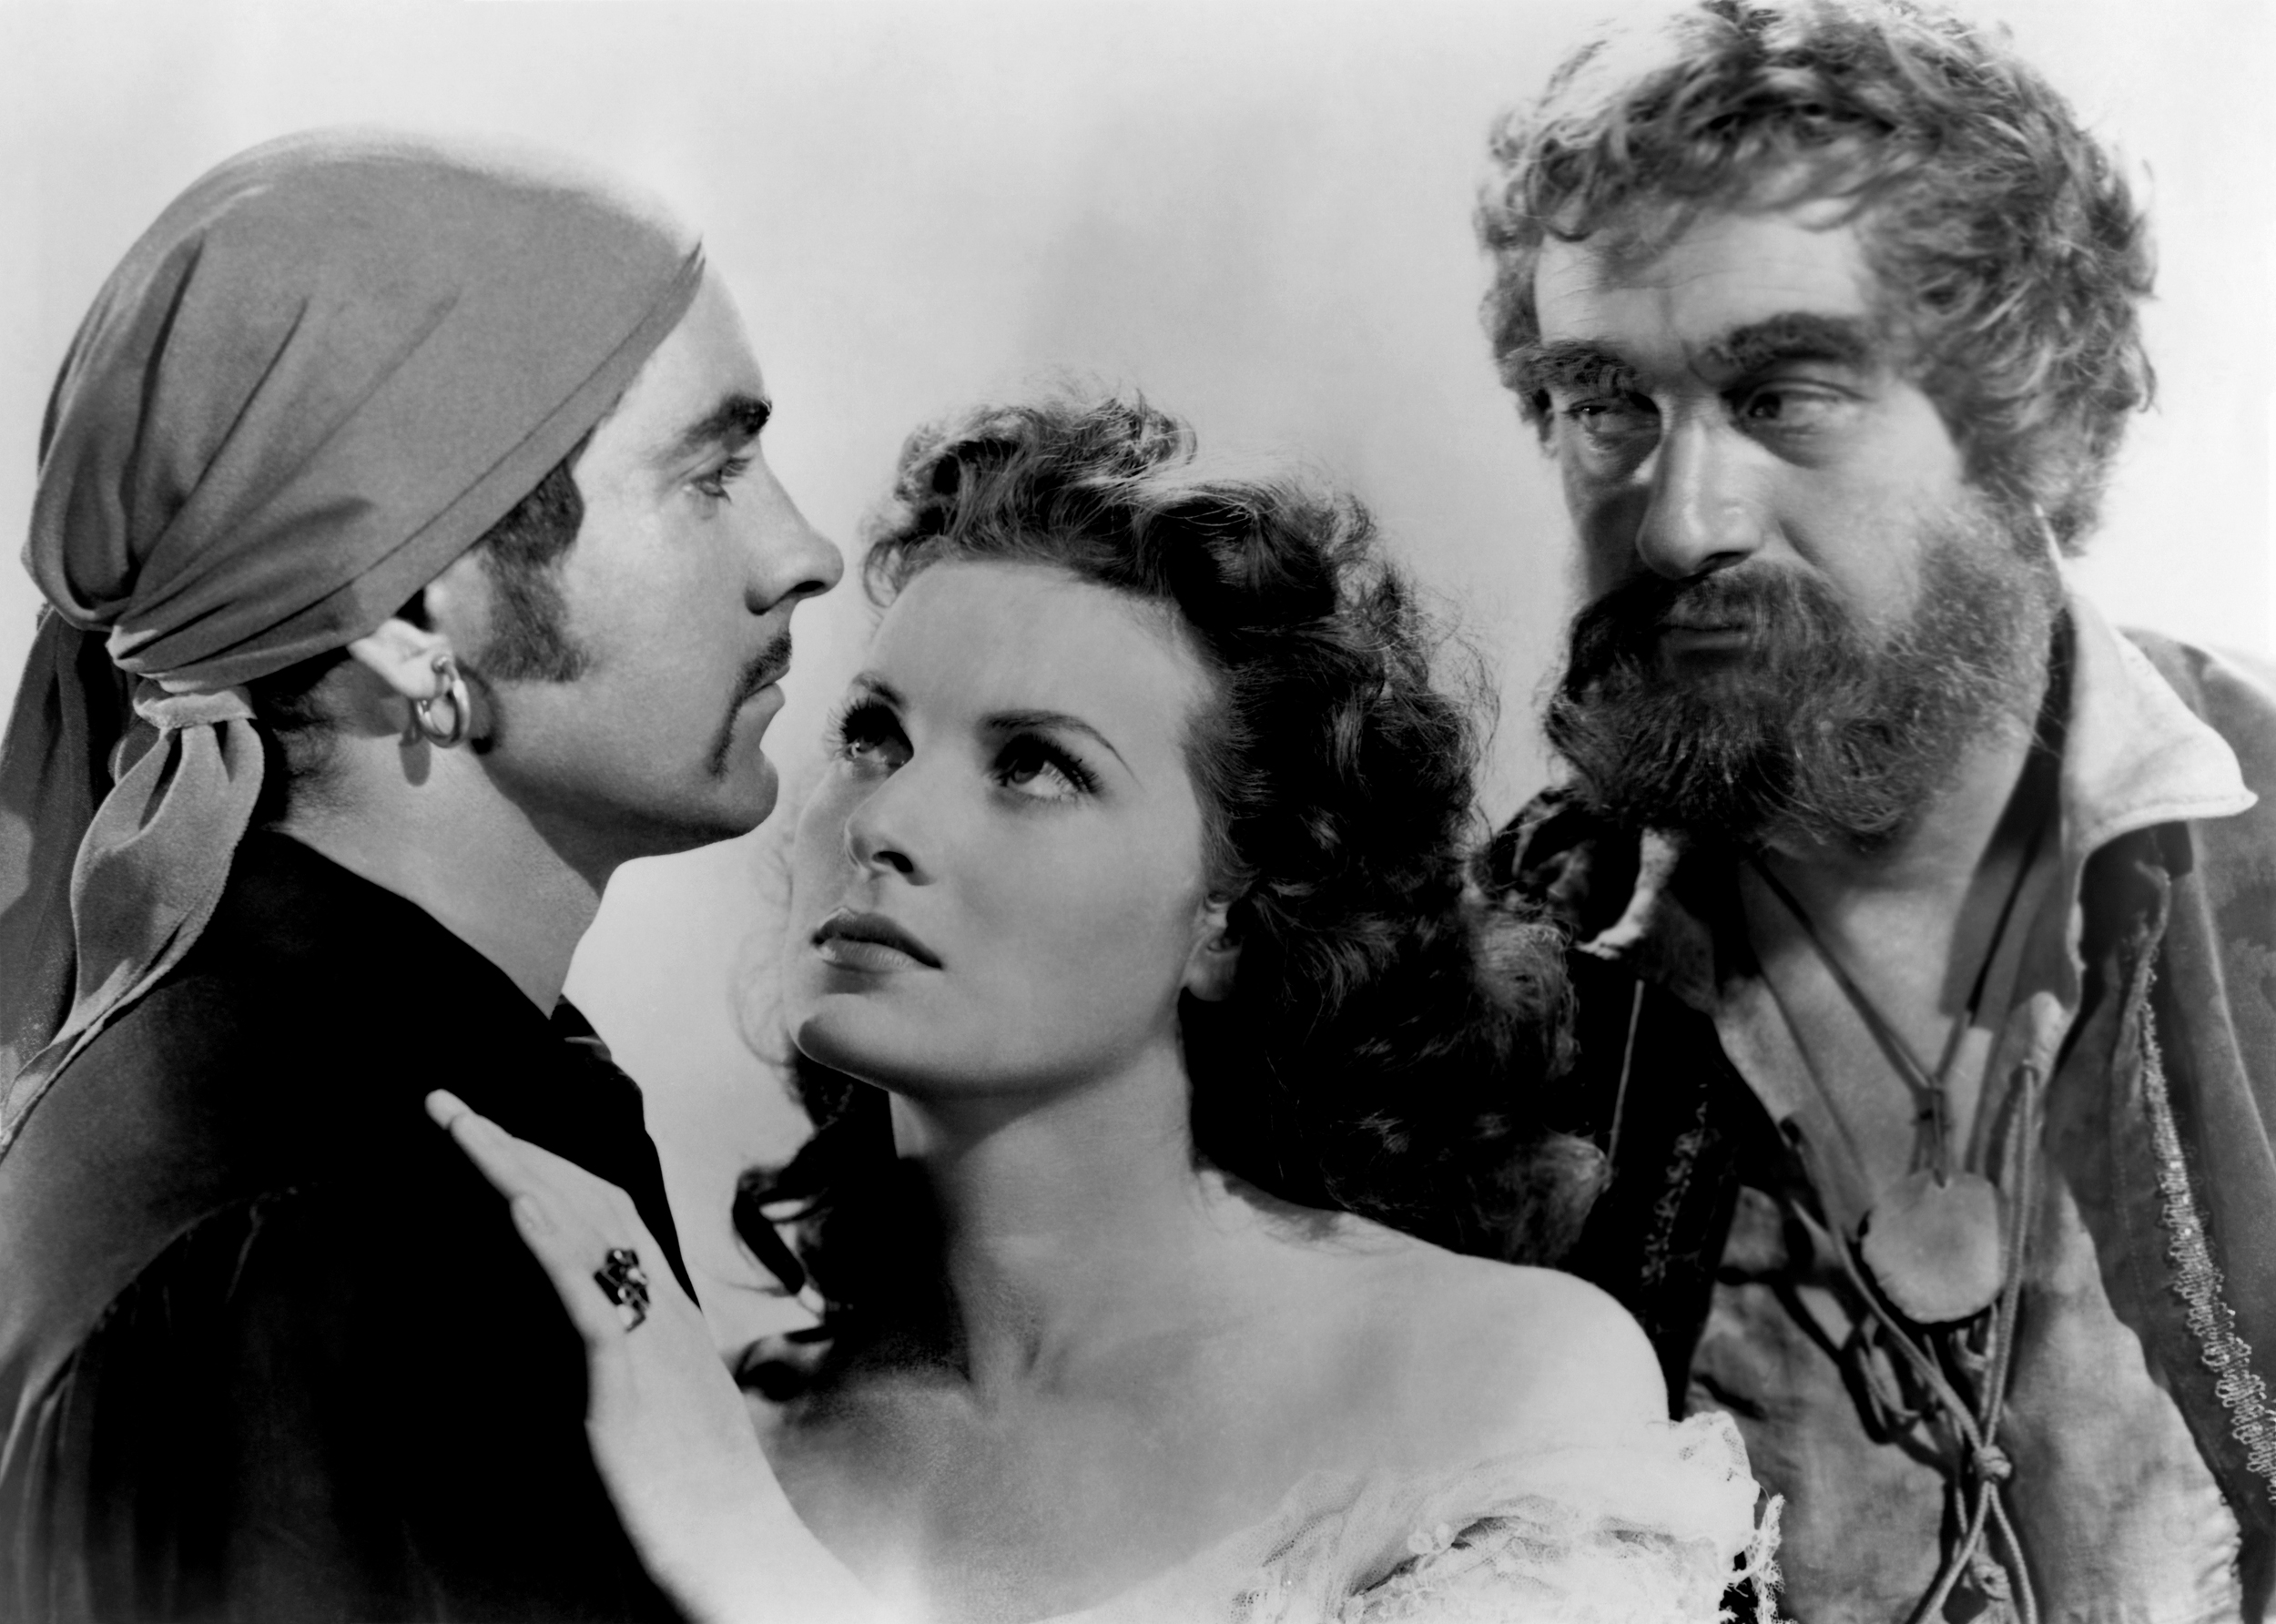 Tyrone Power, Jr. in The Black Swan with (L to R) Tyrone Power, Jr., Maureen O'Hara, George Sanders (Courtesy of Sarah and Michelle)